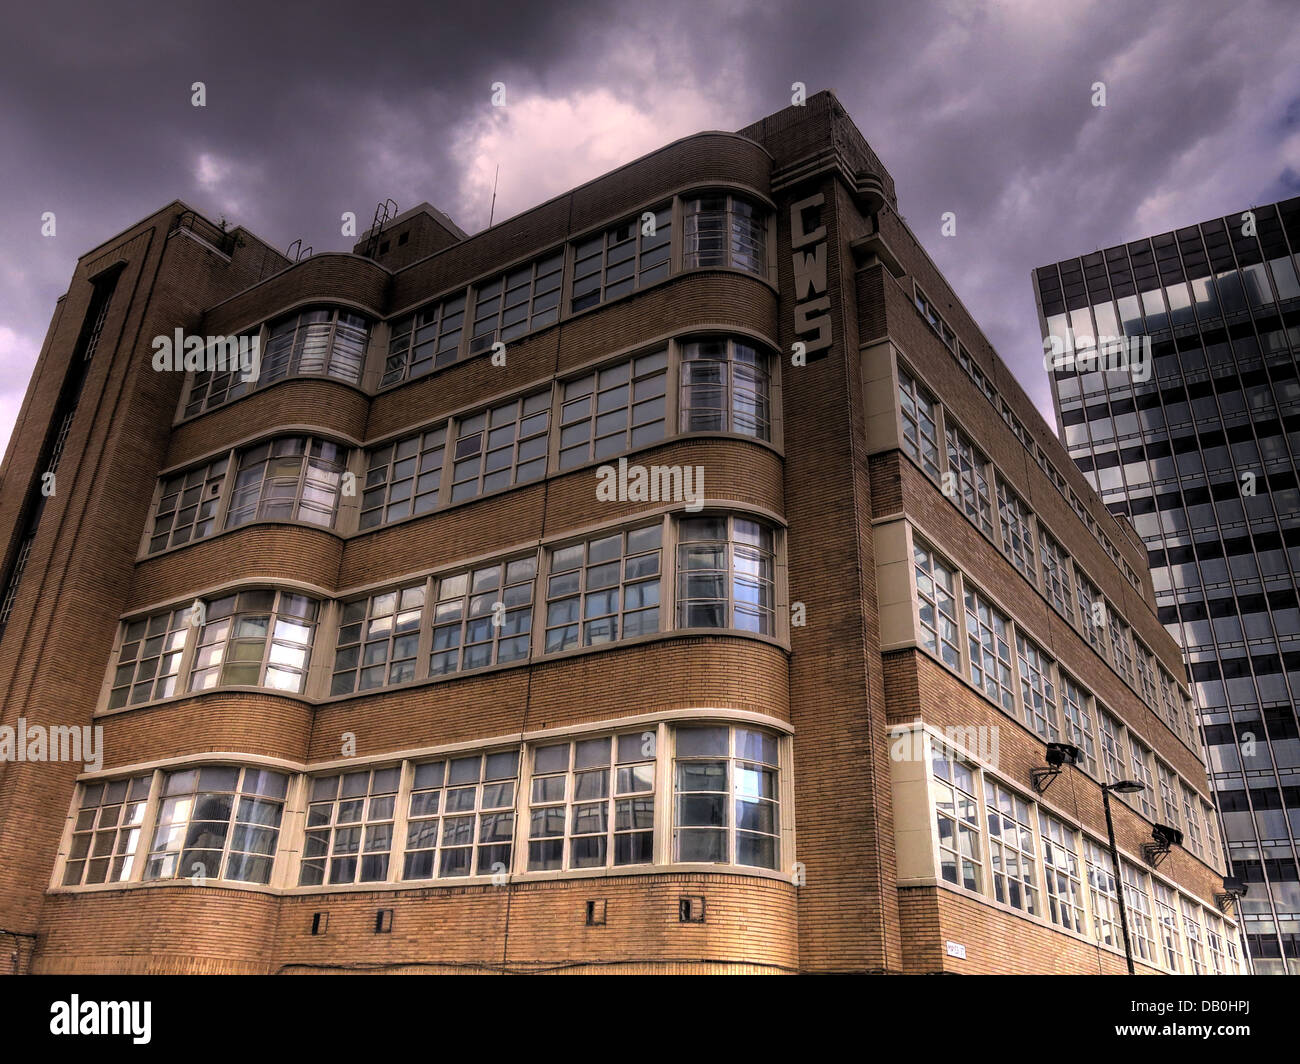 The 1920s style CWS building with stormy sky Stock Photo